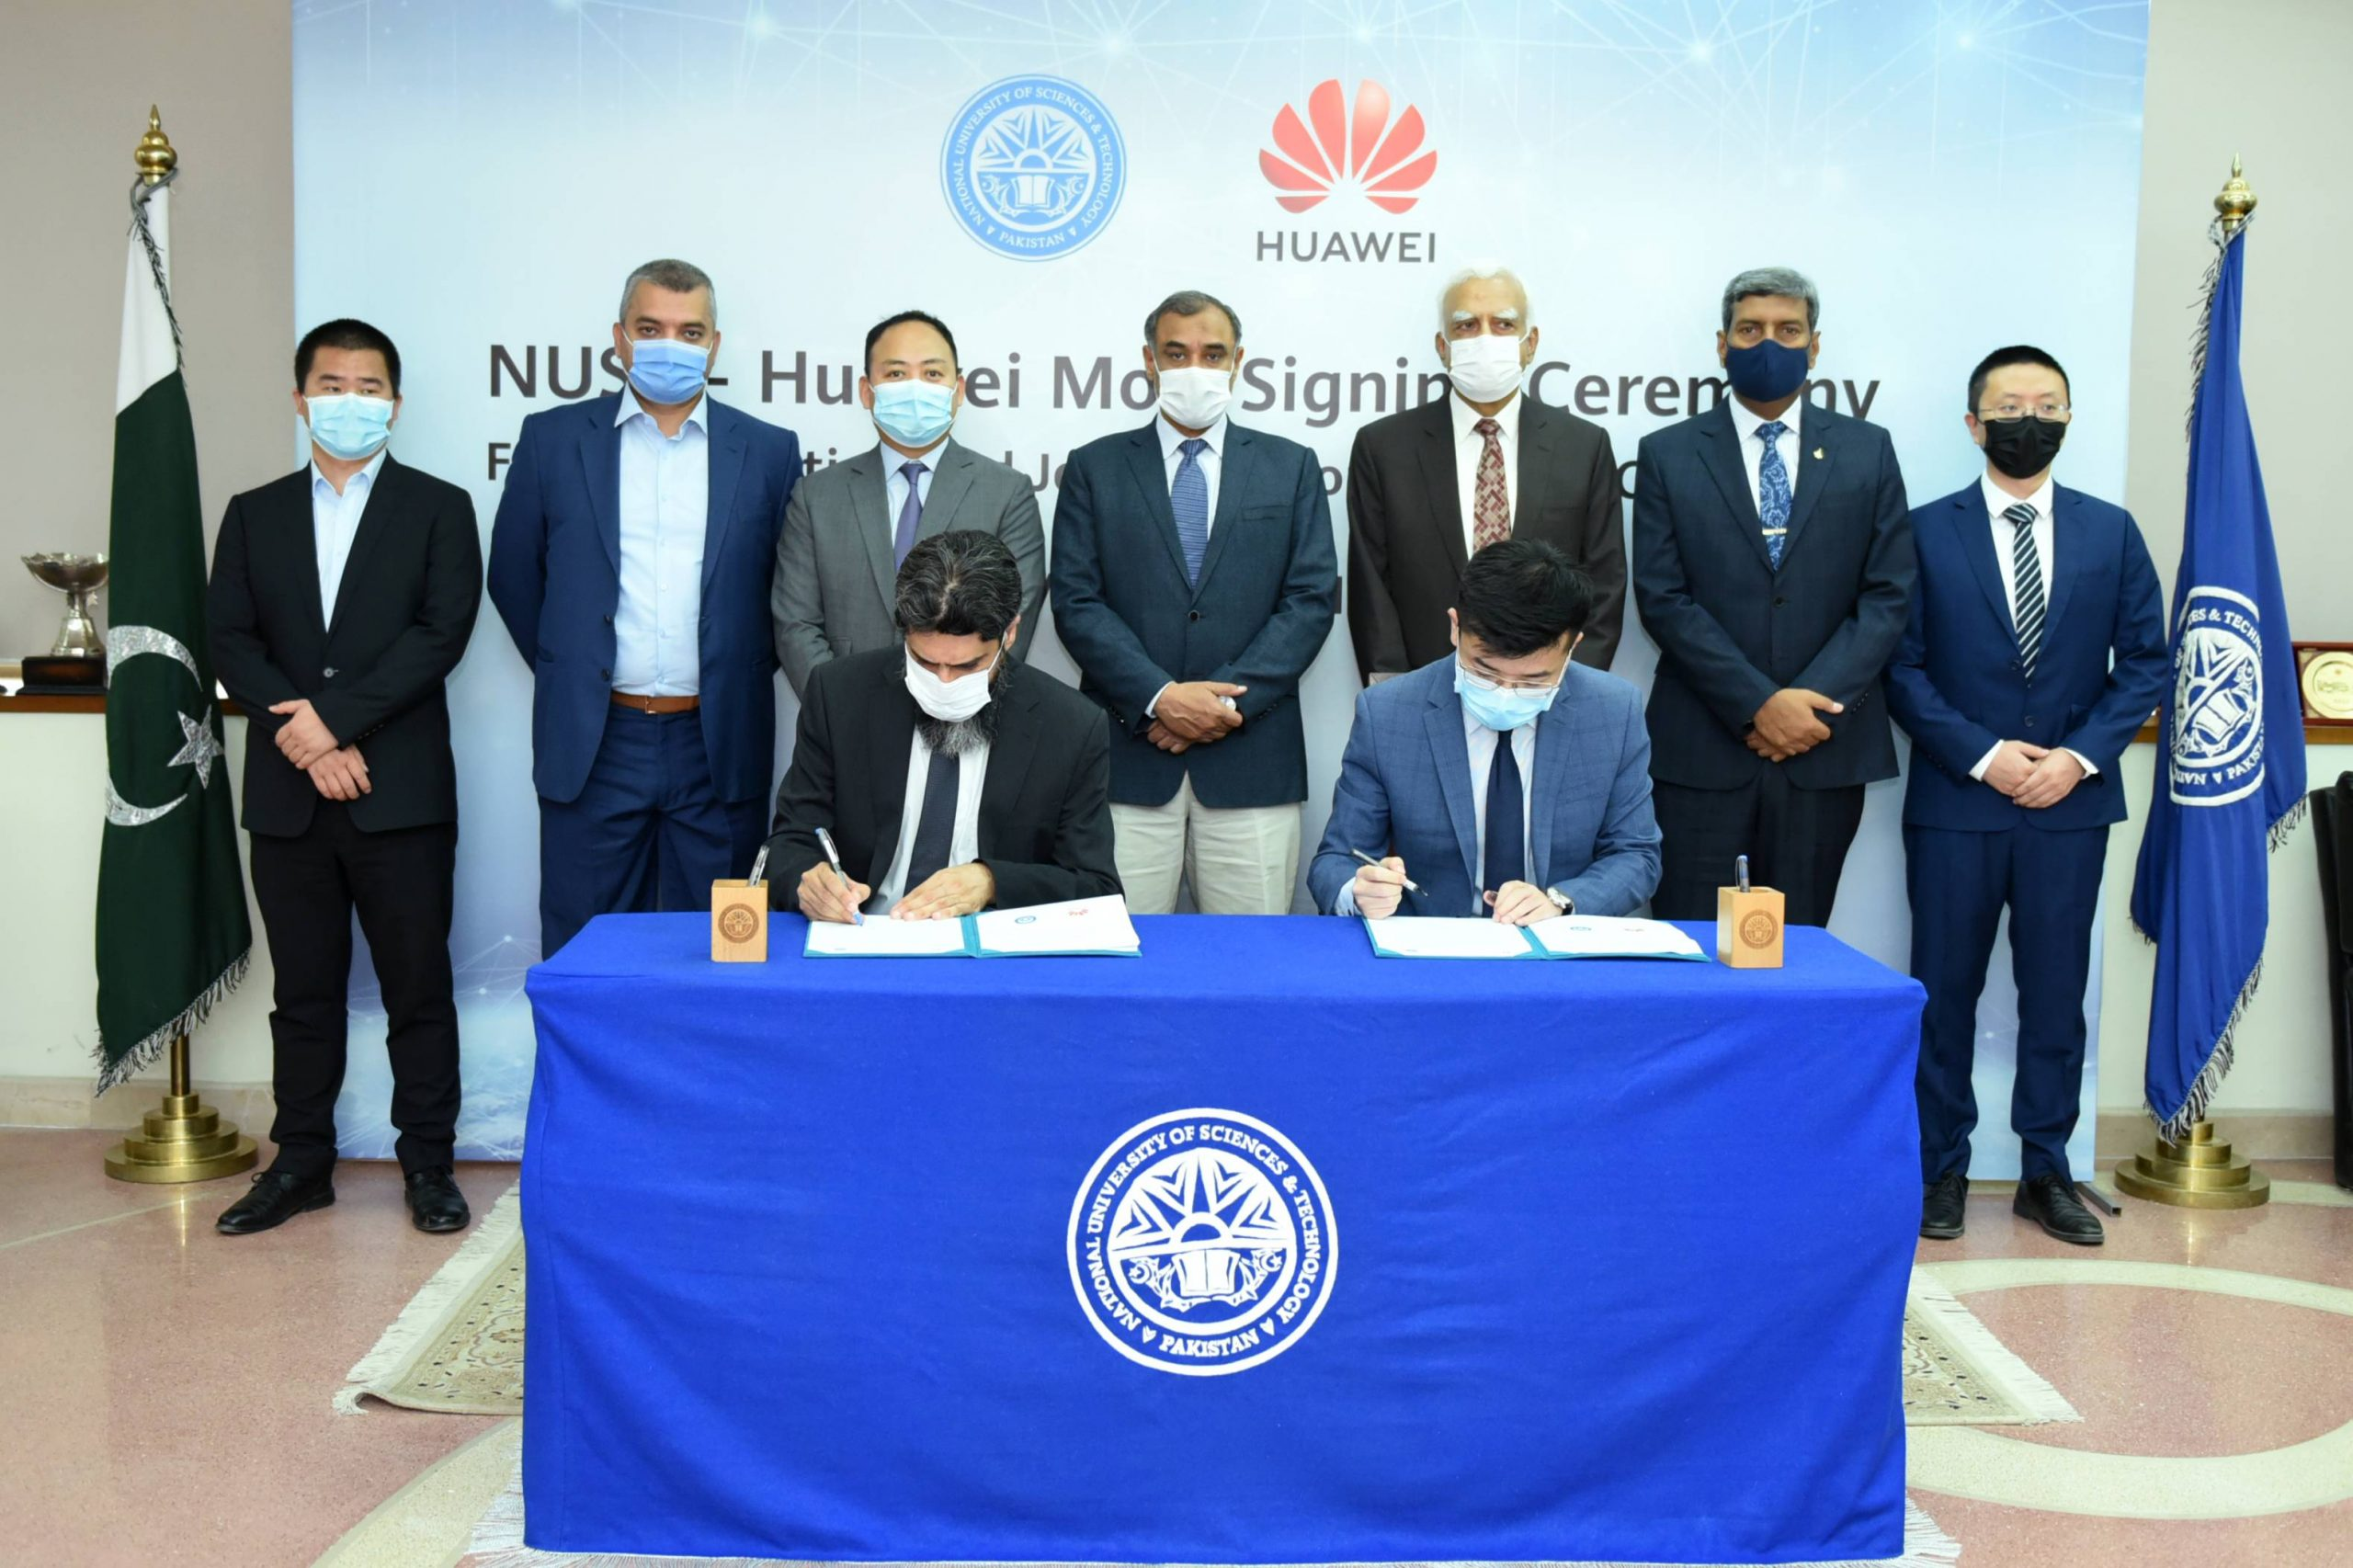 Huawei and NUST join Hands to Develop AI-Enabled Talent in Pakistan